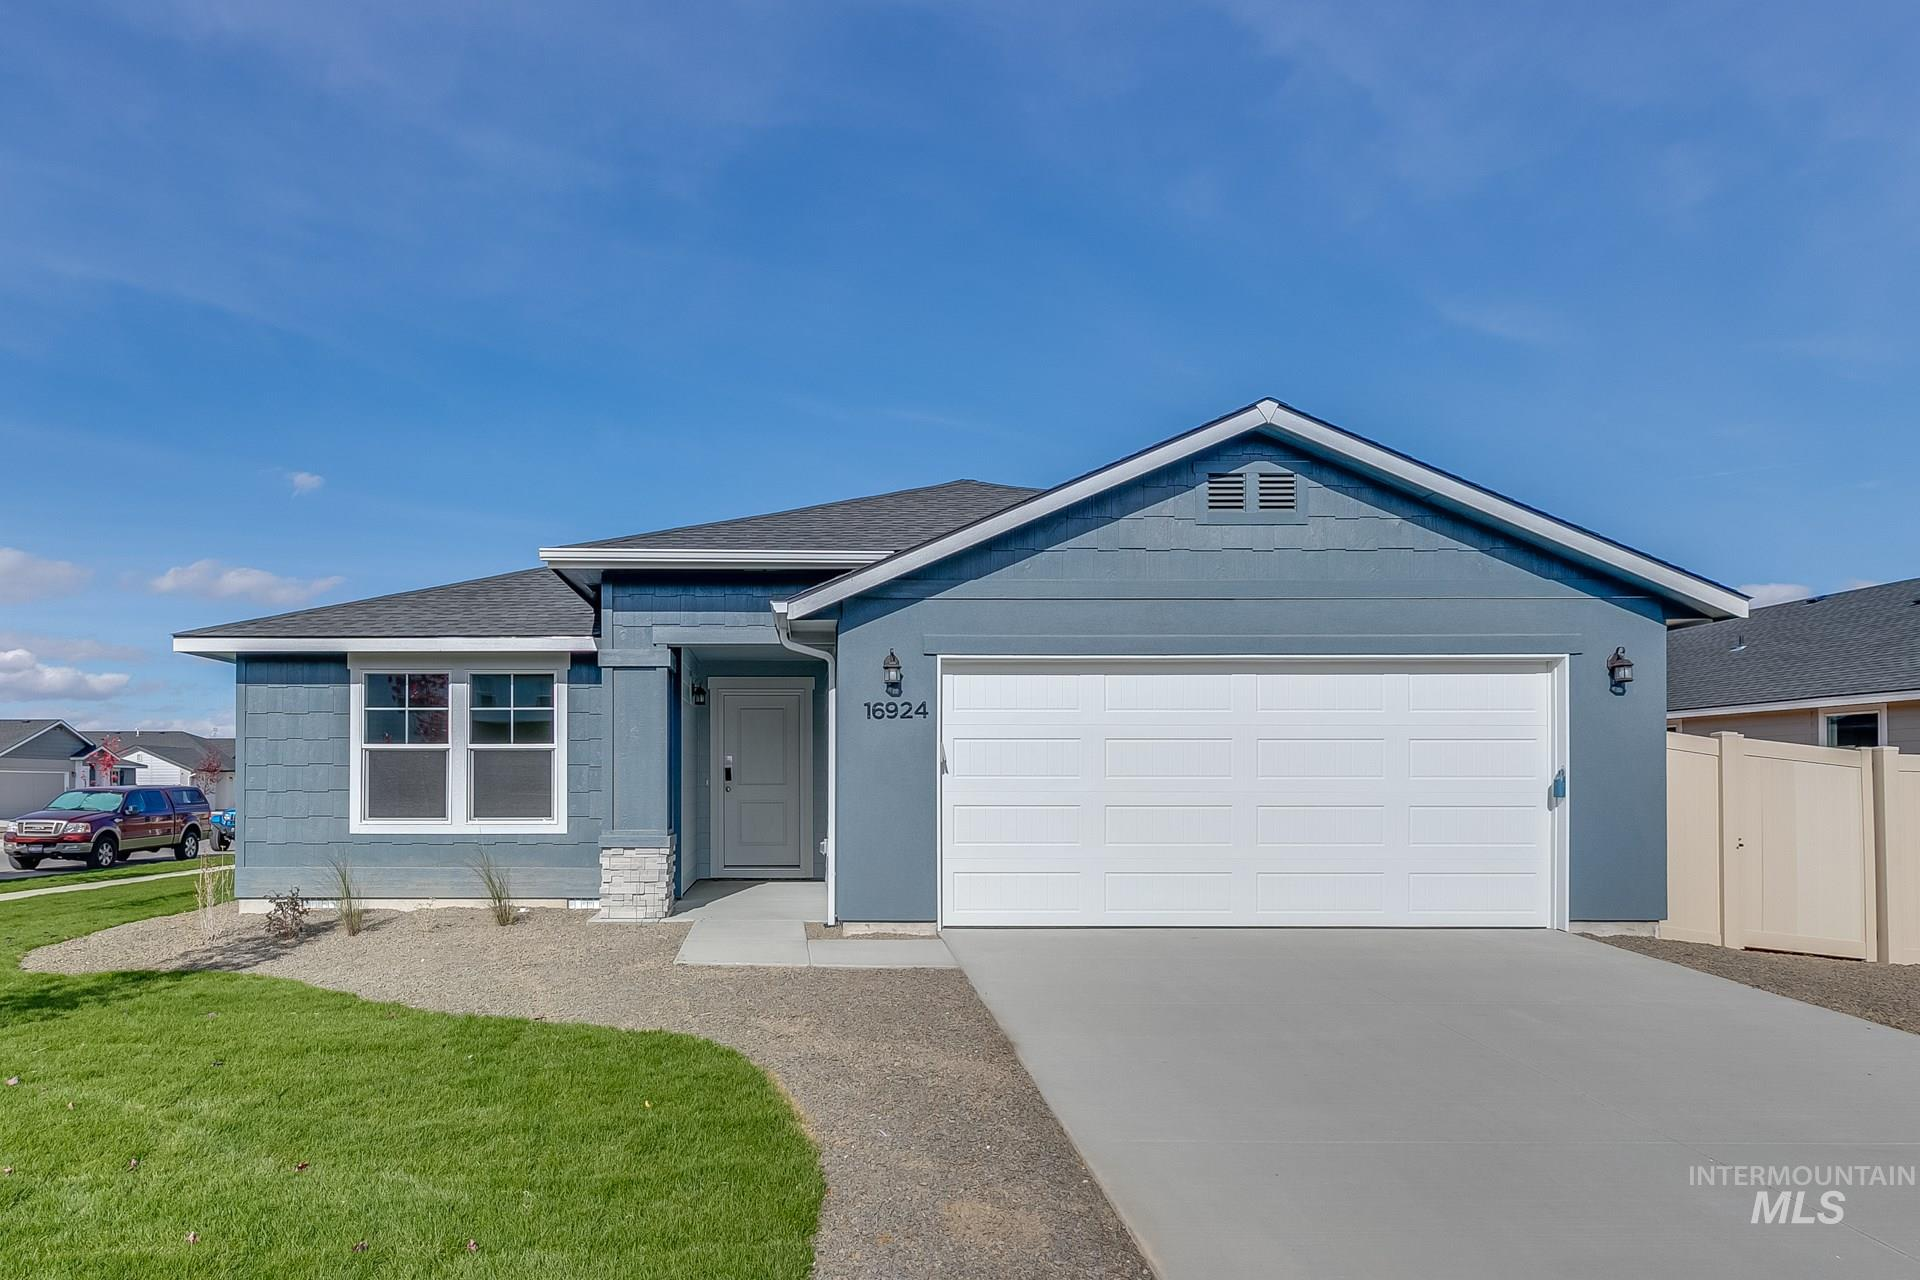 1545 N Thistle Dr Property Photo - Kuna, ID real estate listing